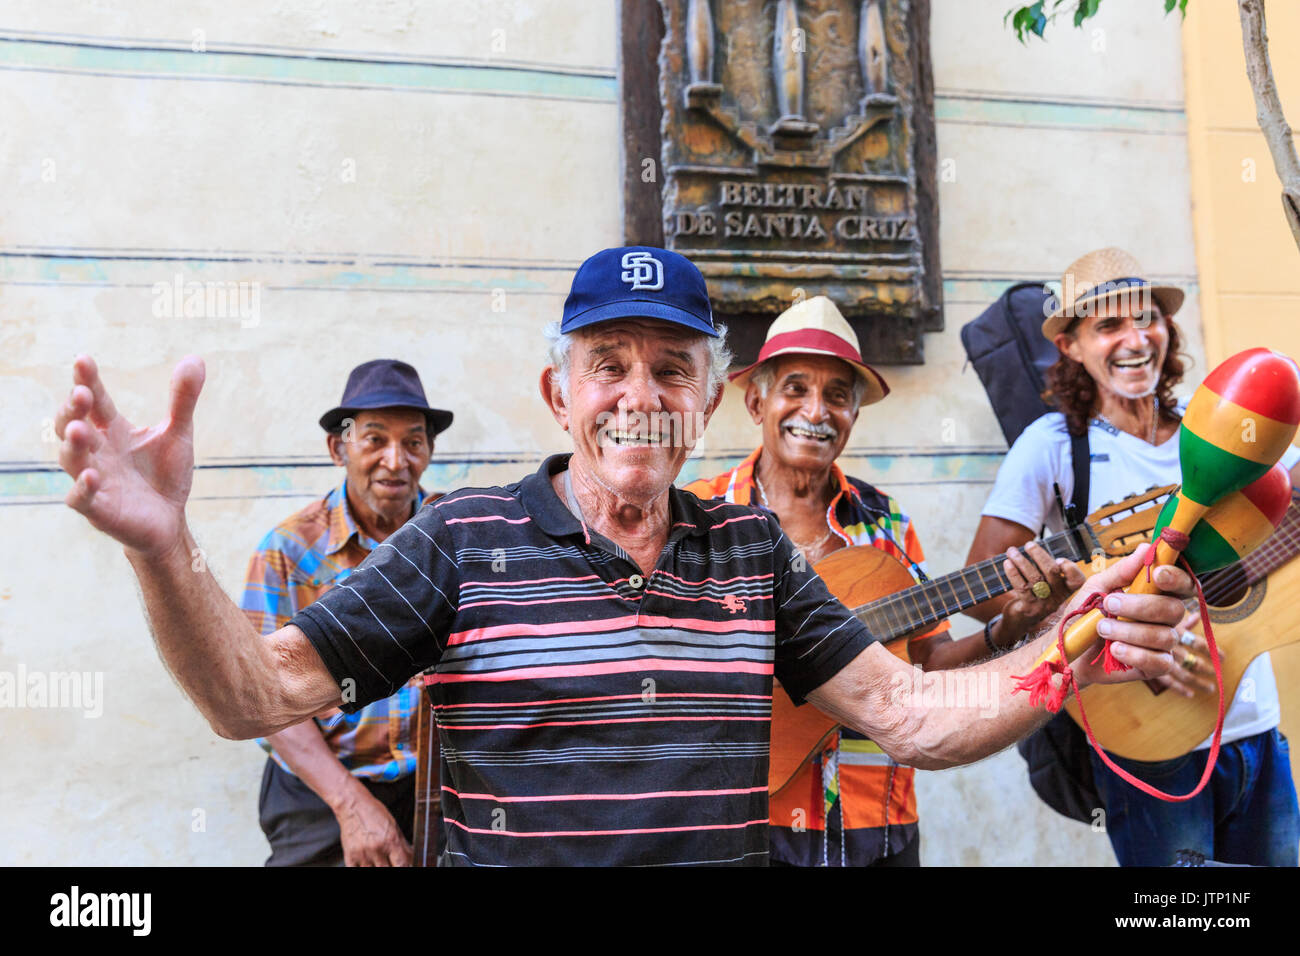 Band of musicians, group play salsa and Cuban music in the street in